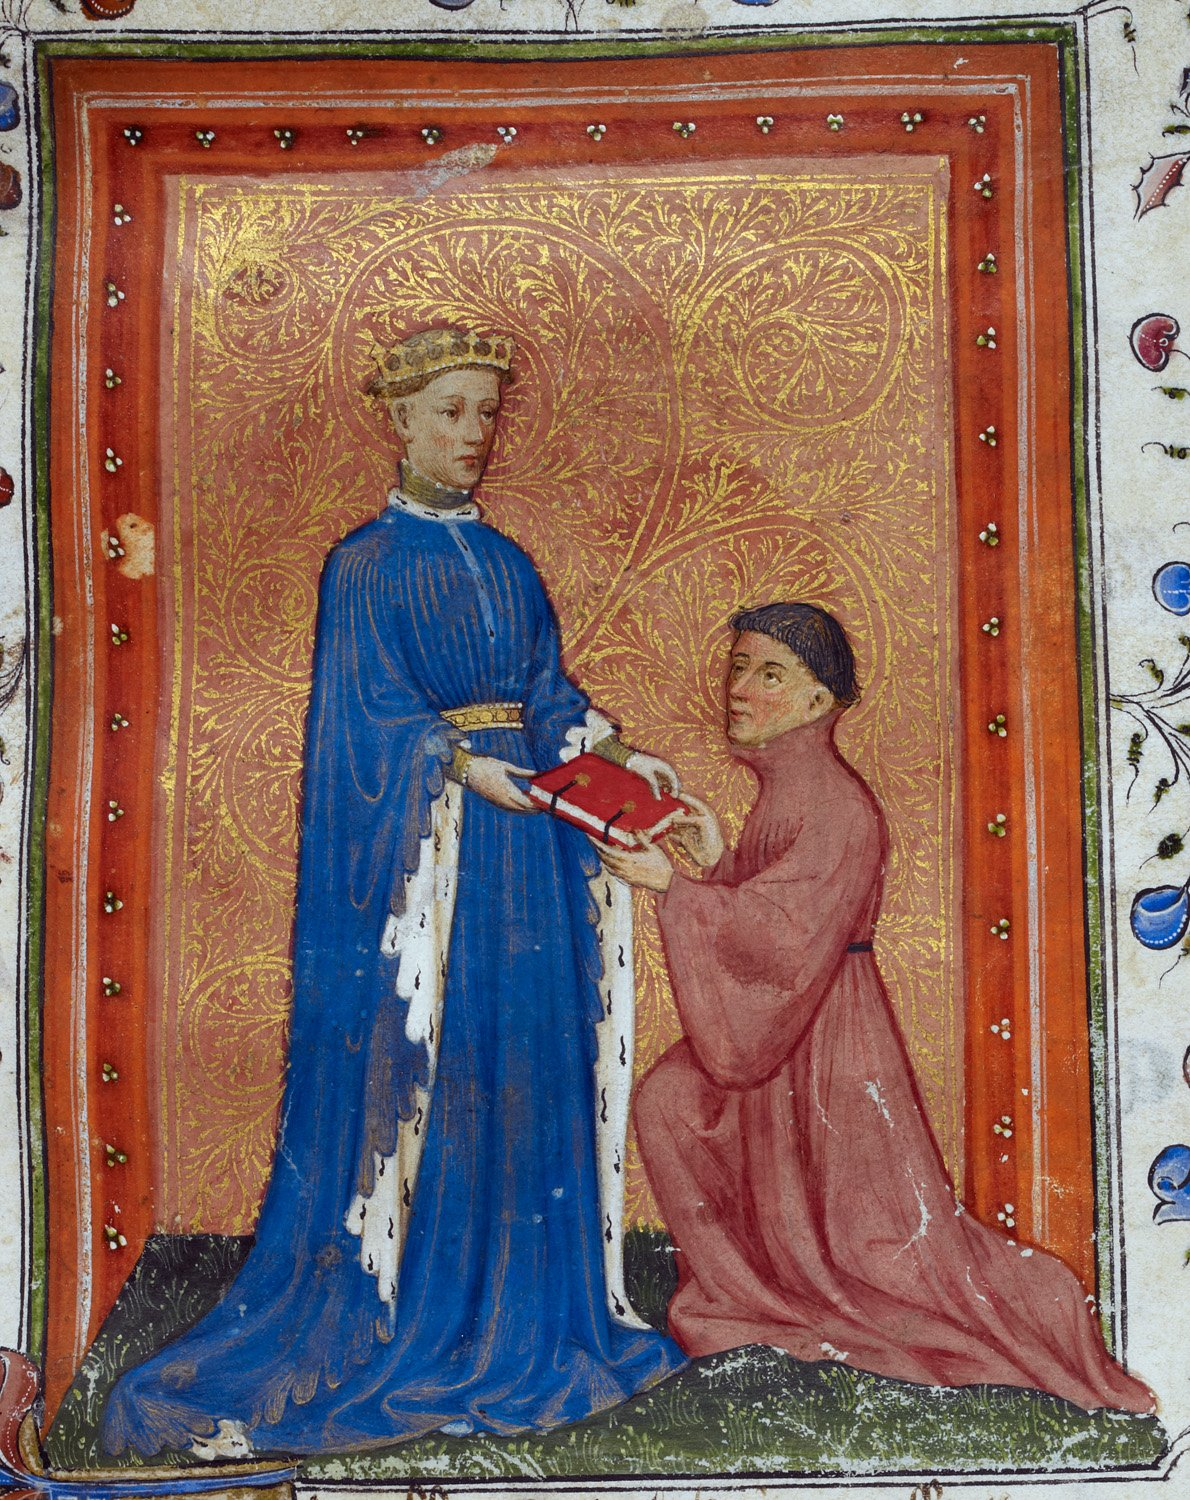 Henry%2C_Prince_of_Wales%2C_presenting_this_book_to_John_Mowbray._Thomas_Hoccleve%2C_Regement_of_Princes%2C_London%2C_c._1411-1413%2C_Arundel_38%2C_f._37detail.jpg